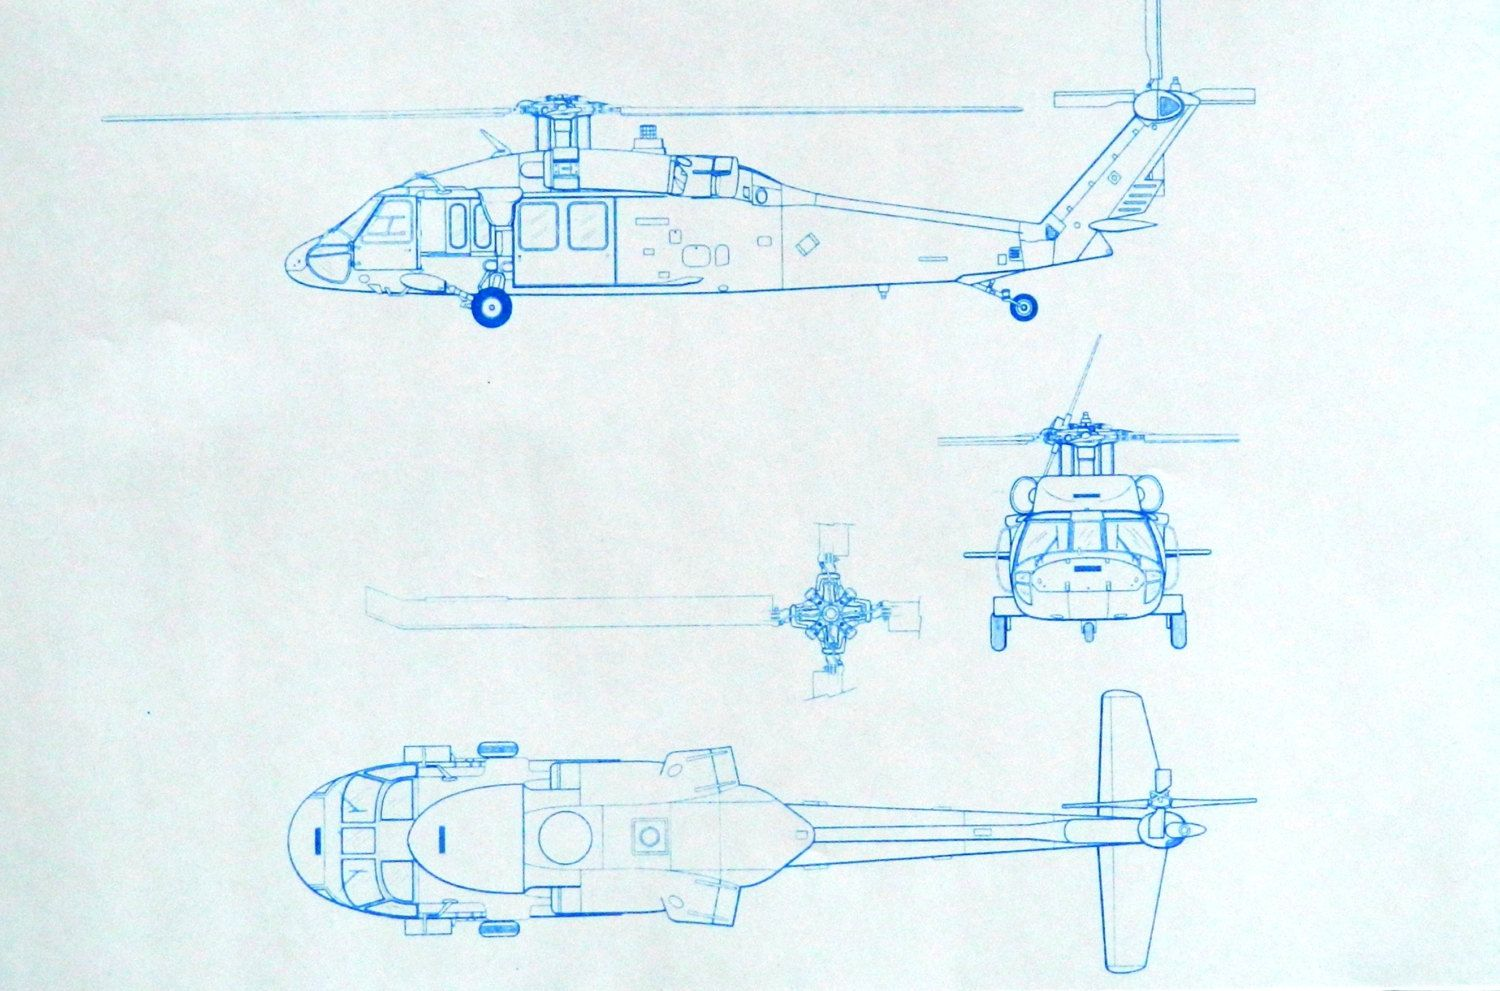 medium resolution of uh 60 blackhawk helicopter blueprint